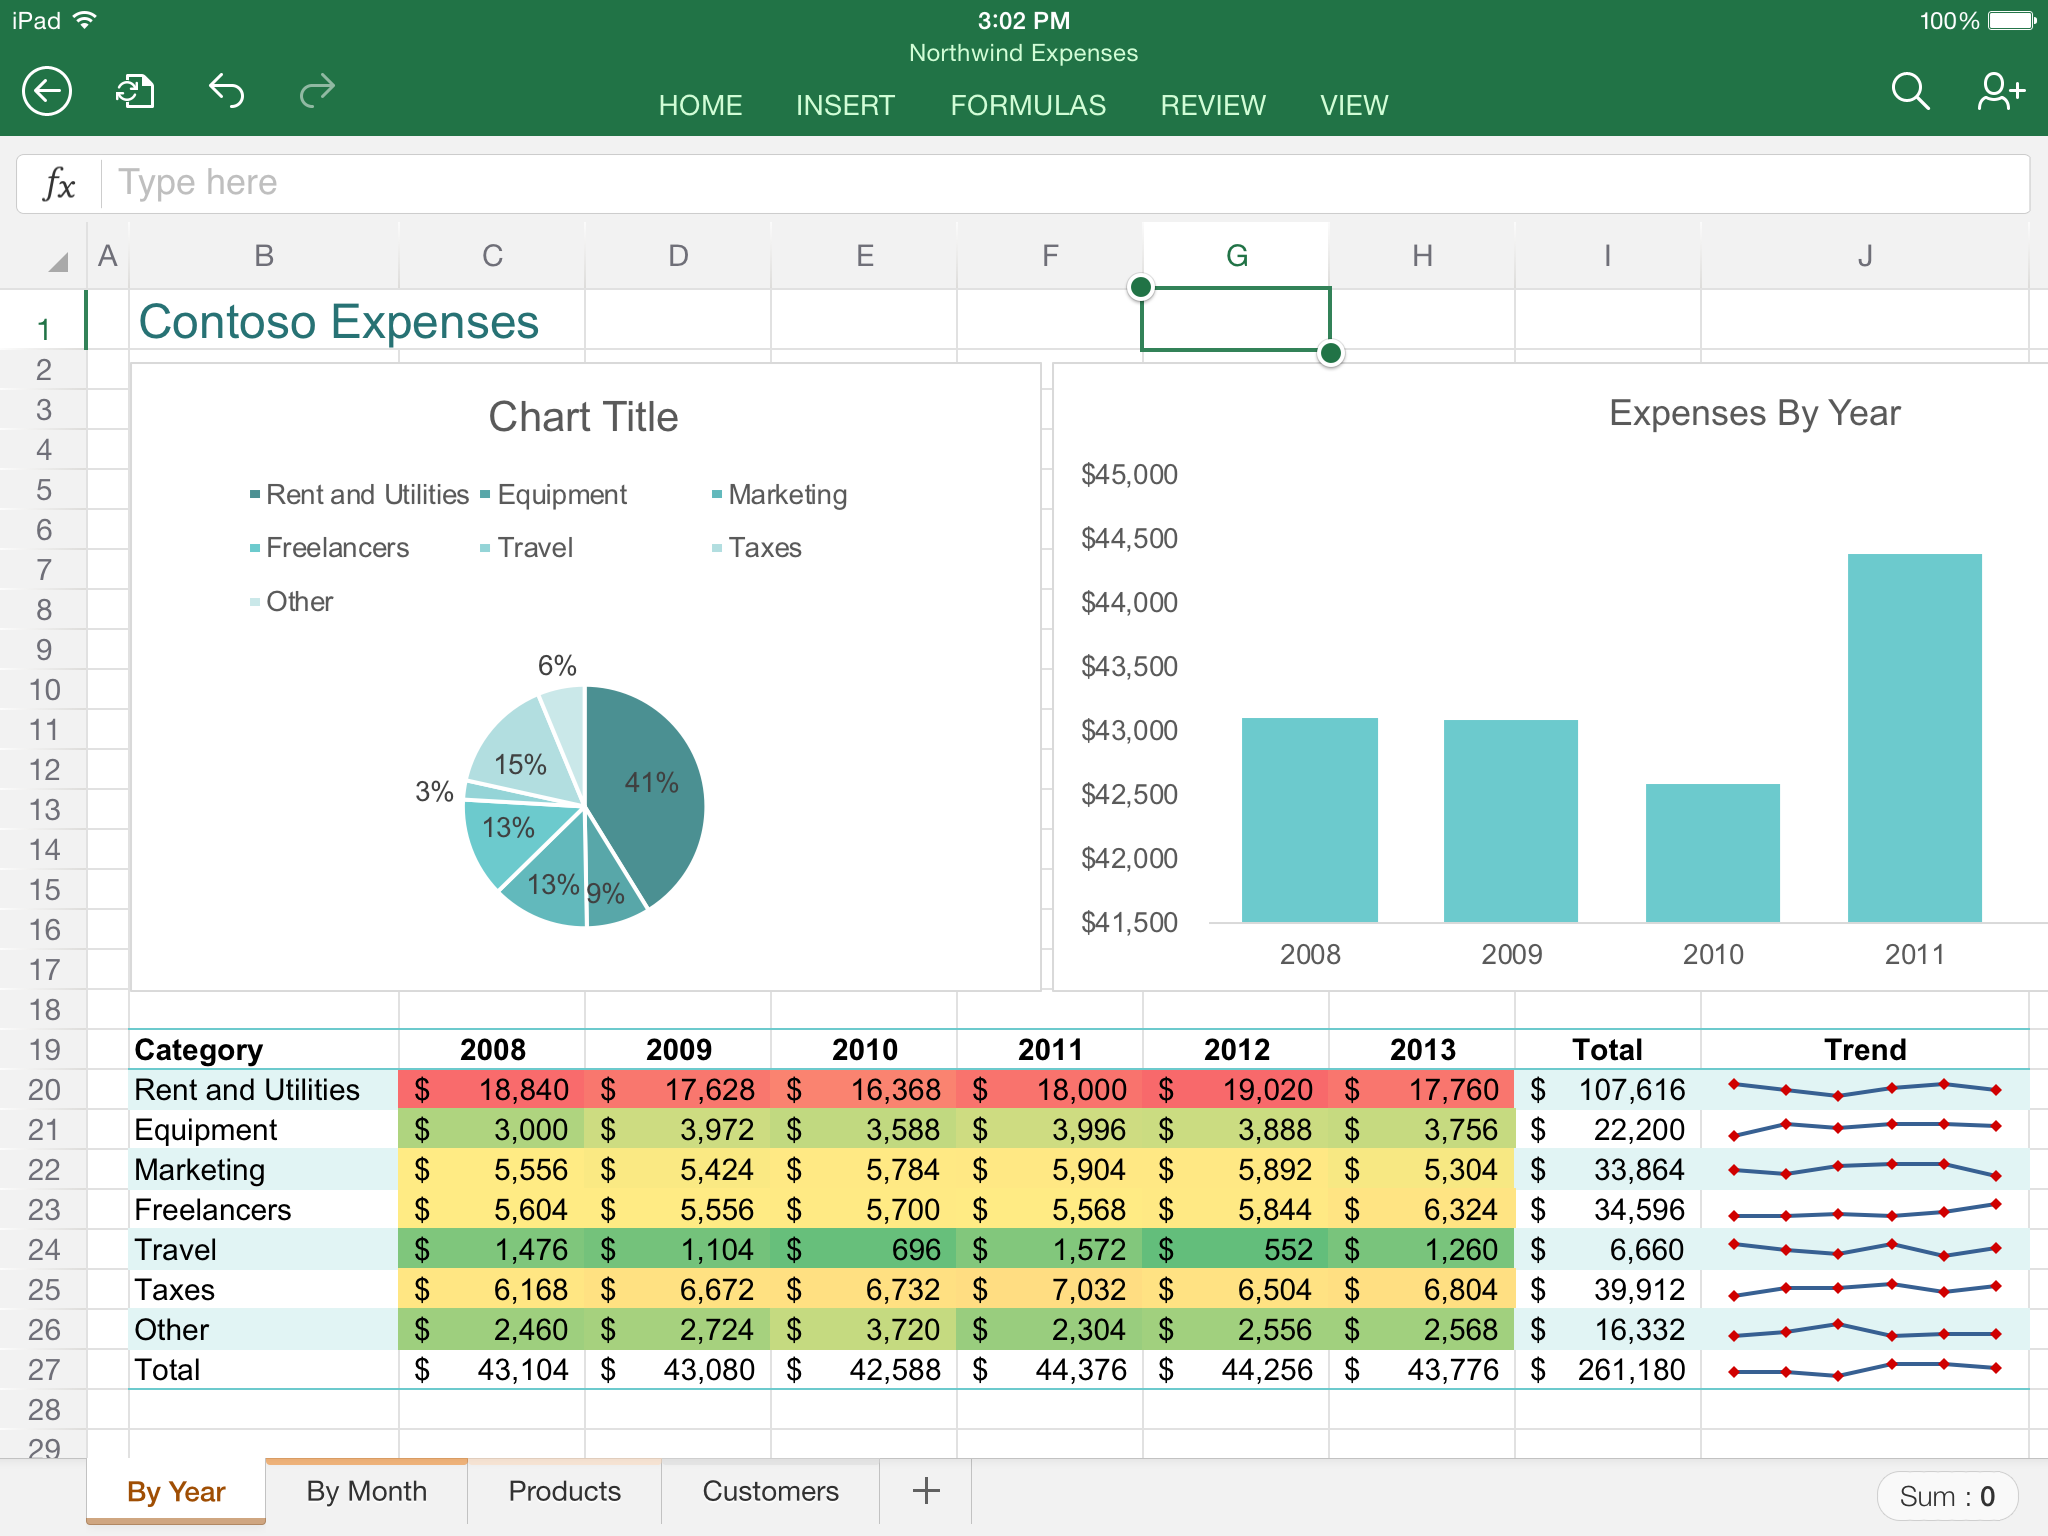 Ediblewildsus  Mesmerizing App Highlight Excel  Mobile Digital Now With Marvelous Excel In Action With Nice Splitting Cell In Excel Also Ssis Excel Source In Addition Create A Waterfall Chart In Excel And Excel Find Number As Well As What Is A Circular Reference Excel Additionally Advanced Charts In Excel From Youstonybrookedu With Ediblewildsus  Marvelous App Highlight Excel  Mobile Digital Now With Nice Excel In Action And Mesmerizing Splitting Cell In Excel Also Ssis Excel Source In Addition Create A Waterfall Chart In Excel From Youstonybrookedu